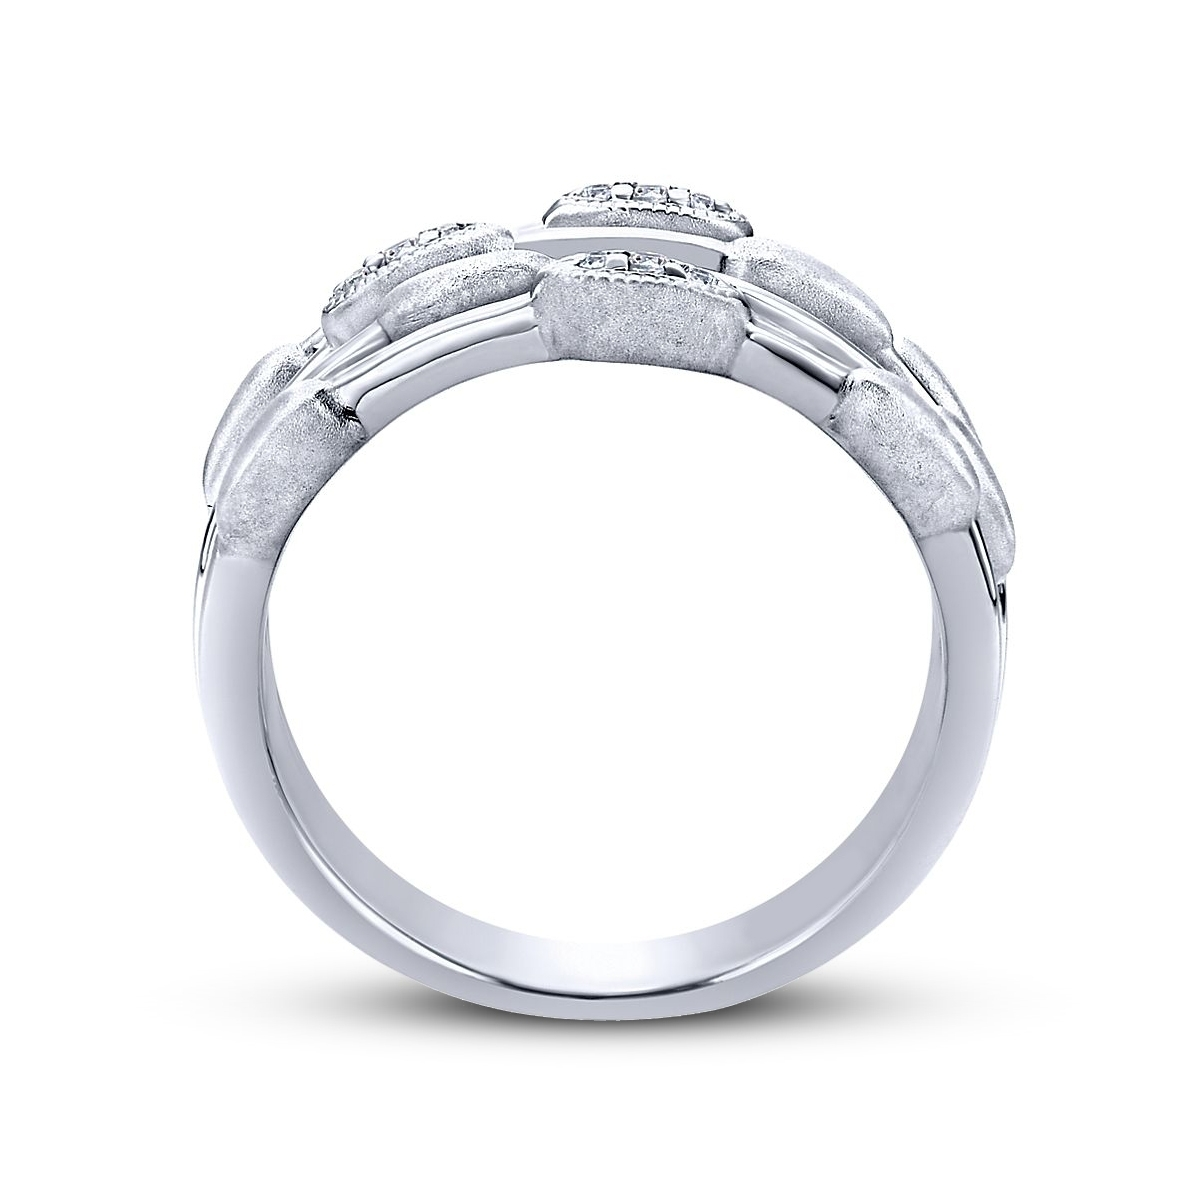 Sterling Four Row Diamond Accent Band | Friedman's Jewelers Intended For Most Current Diamond Four Row Anniversary Bands In Sterling Silver (Gallery 5 of 15)